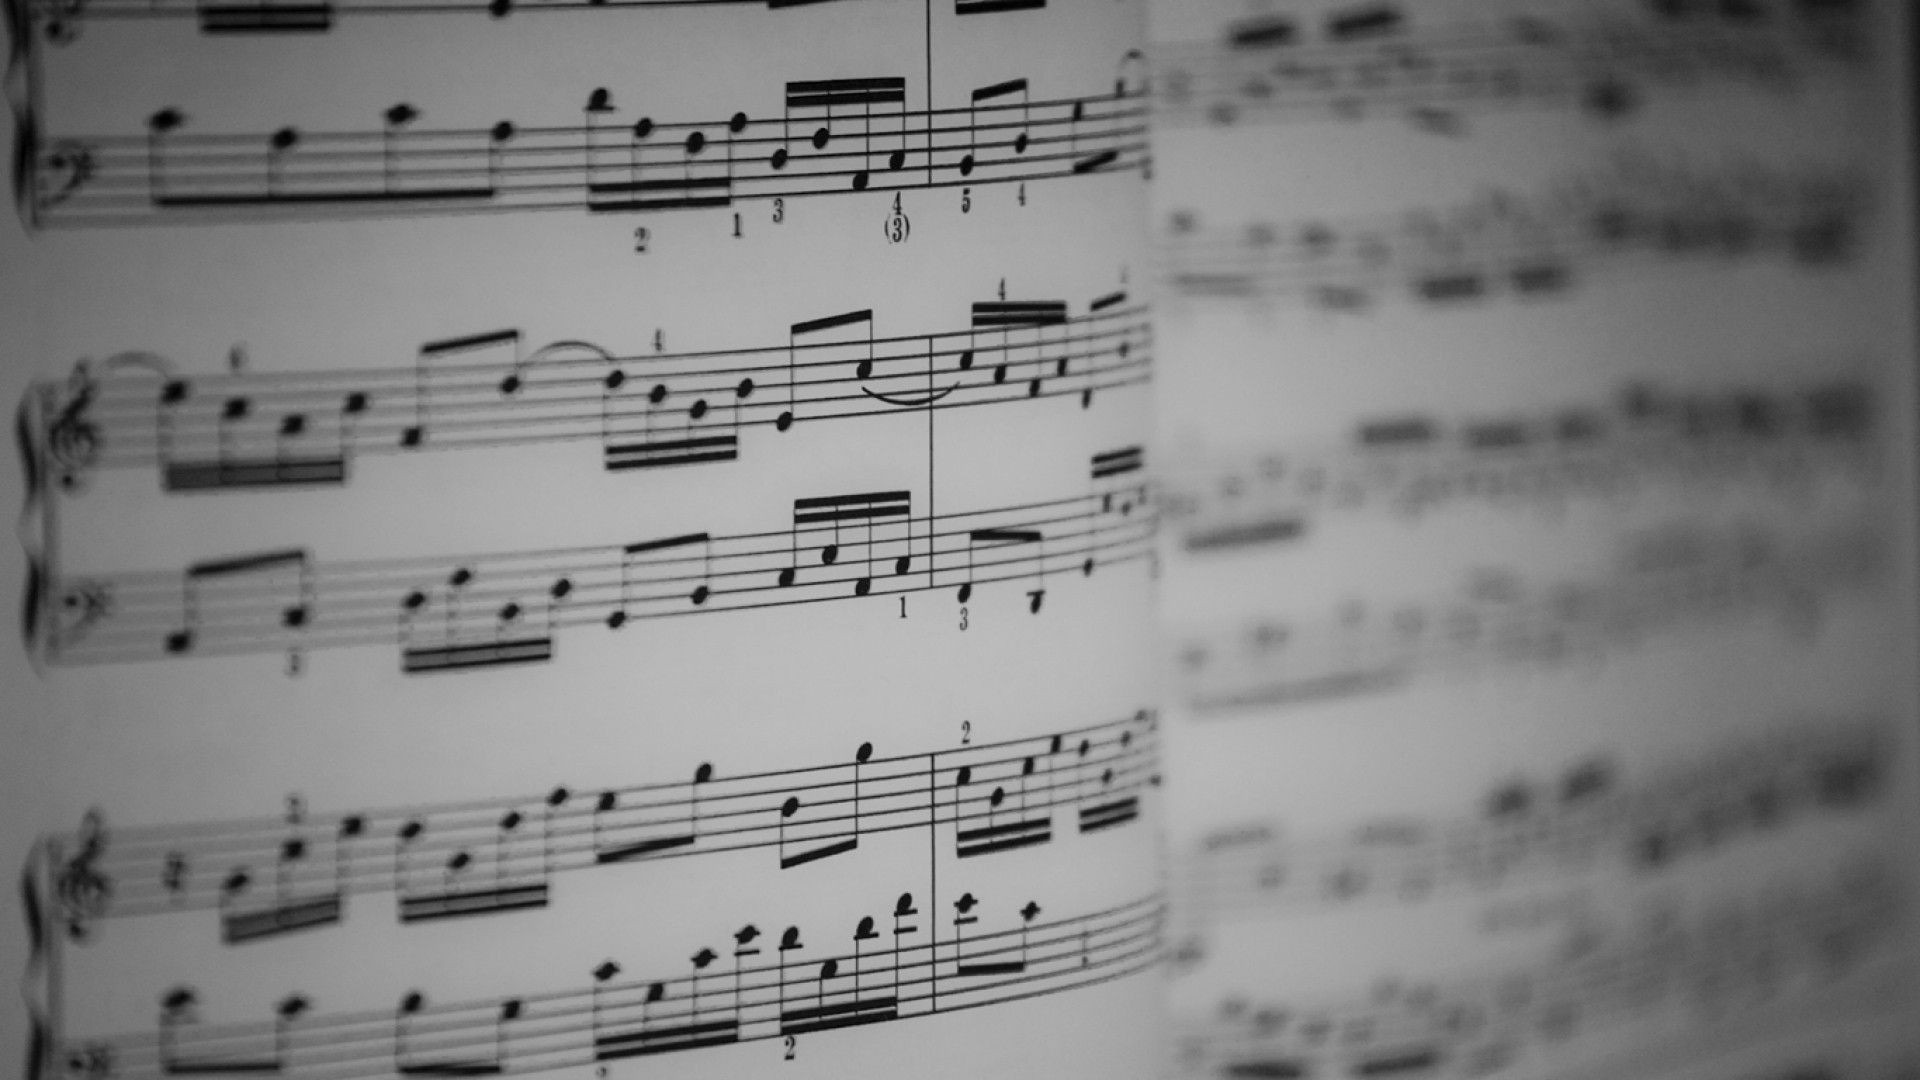 sheet music background download free awesome full hd wallpapers